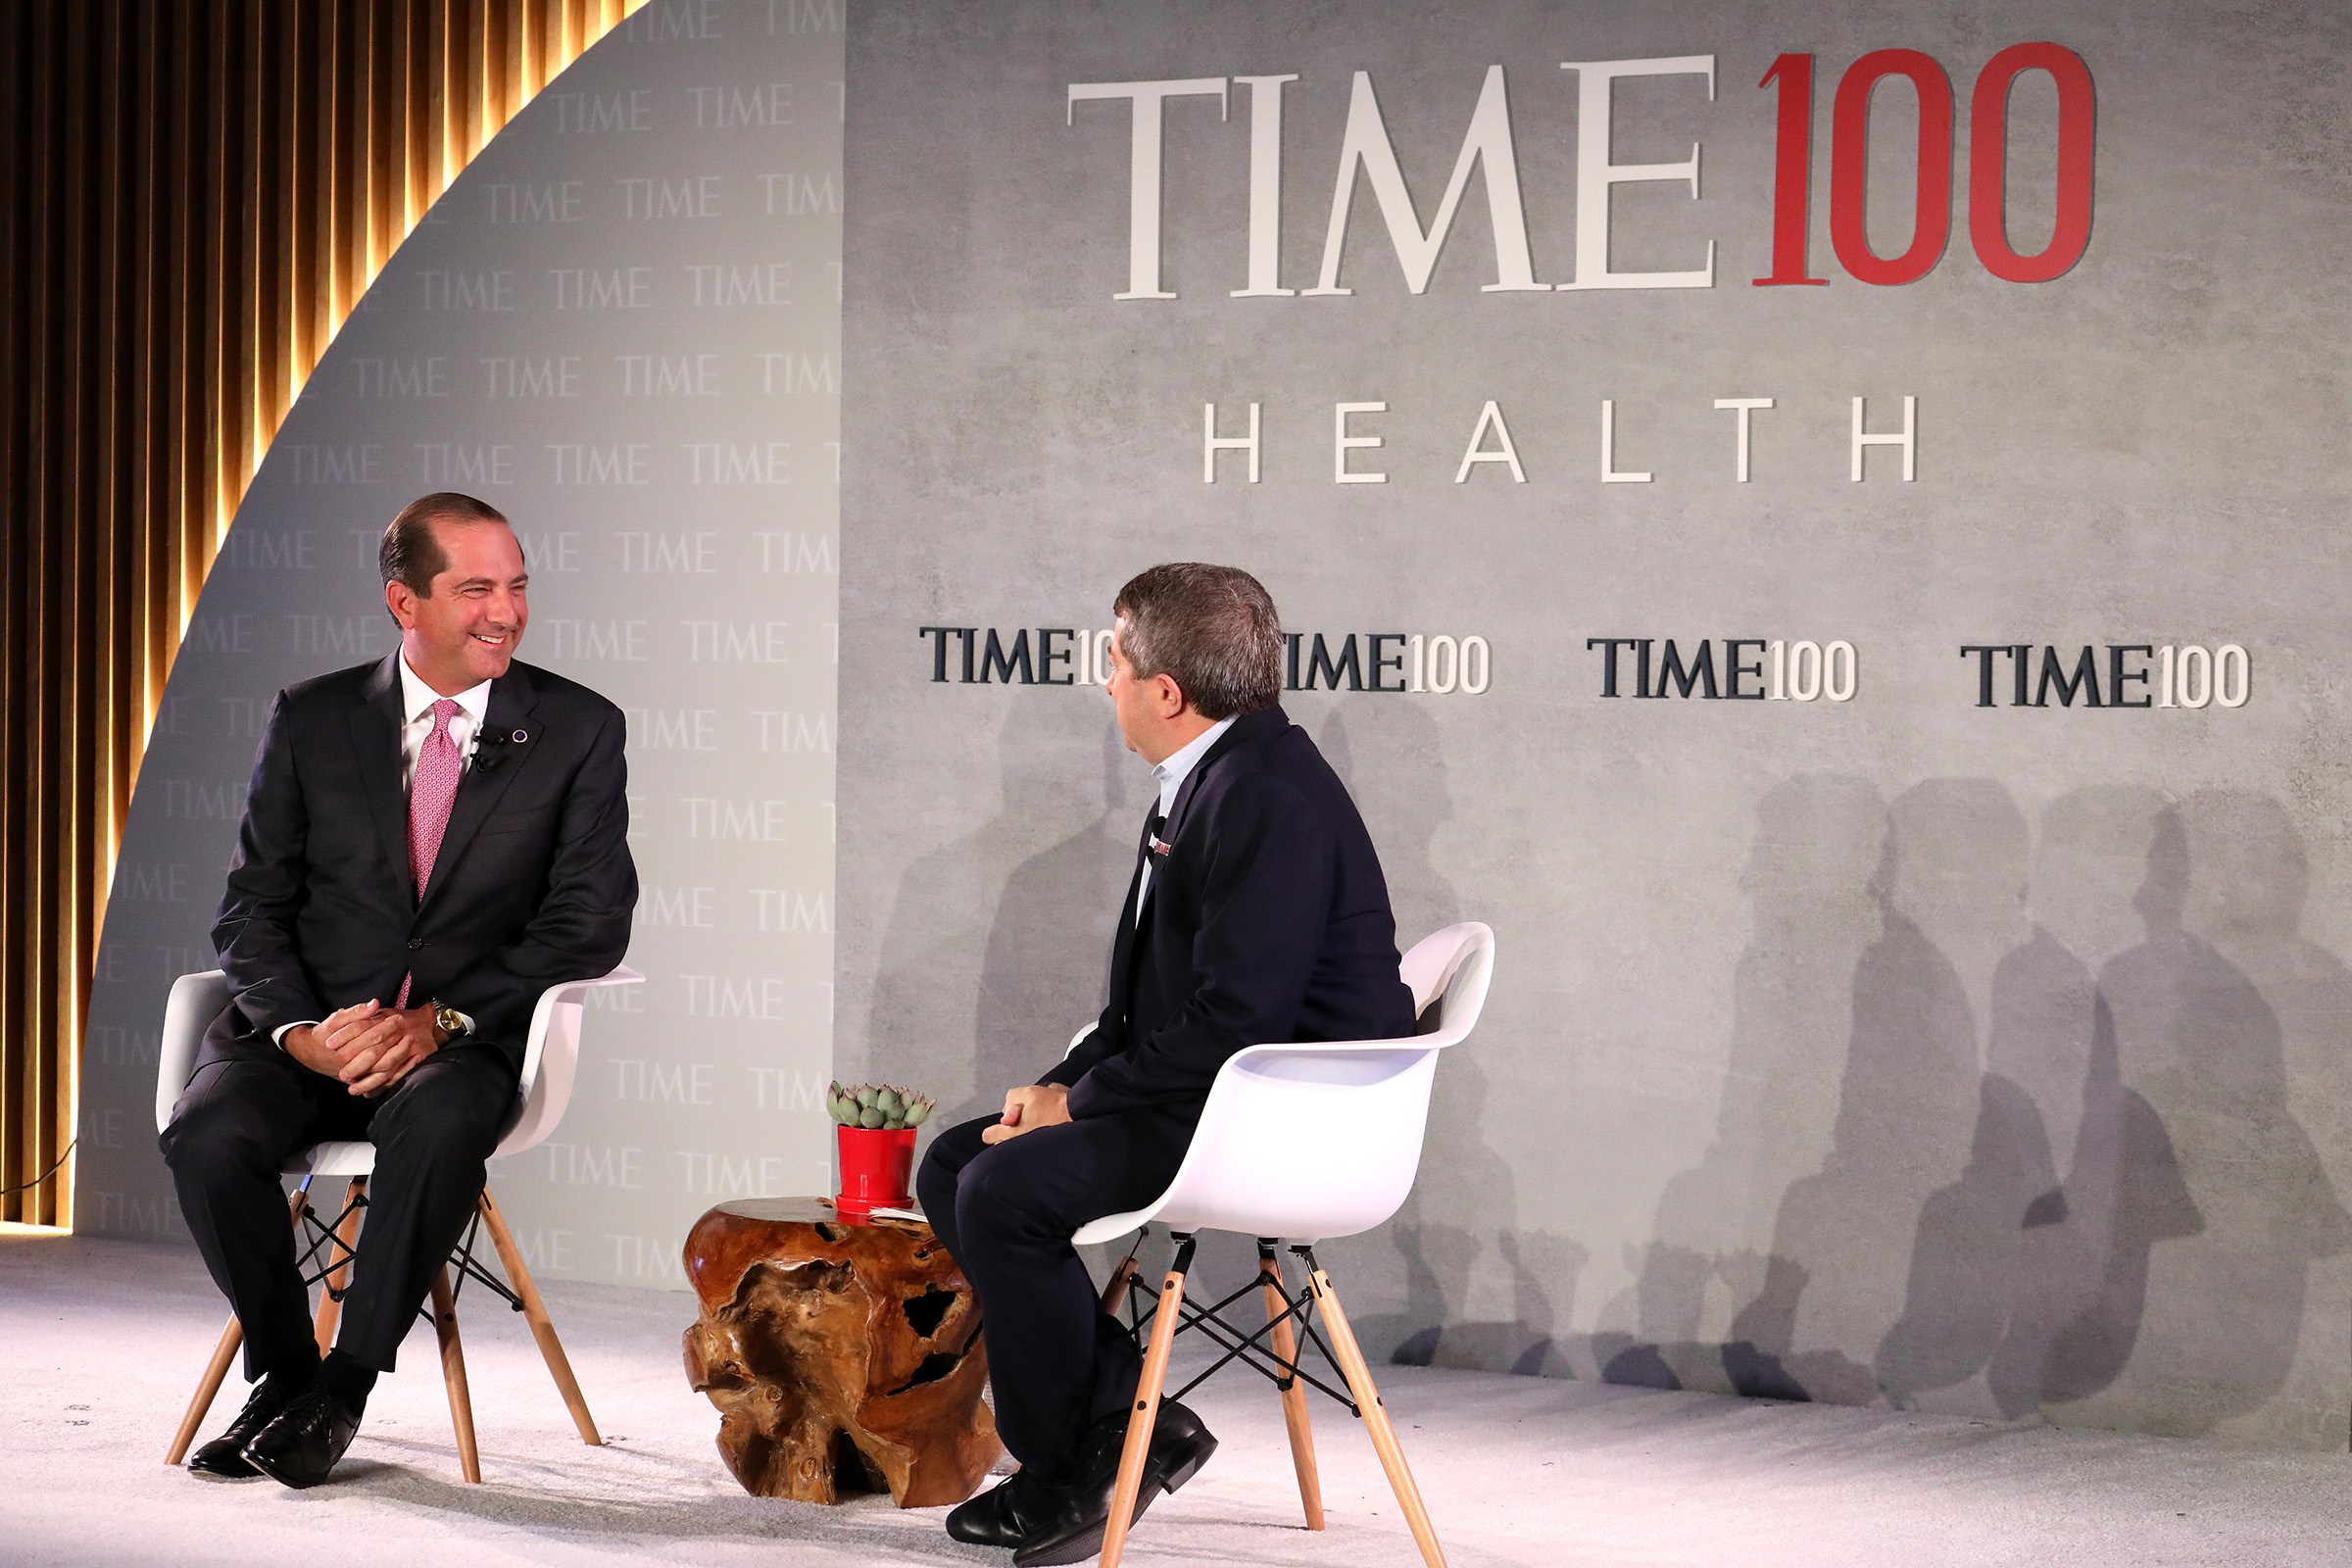 United States Secretary of Health and Human Services, Alex Azar (L), speaks with Editor-in-Chief & CEO at TIME, Edward Felsenthal, onstage during the TIME 100 Health Summit at Pier 17 on October 17, 2019 in New York City.